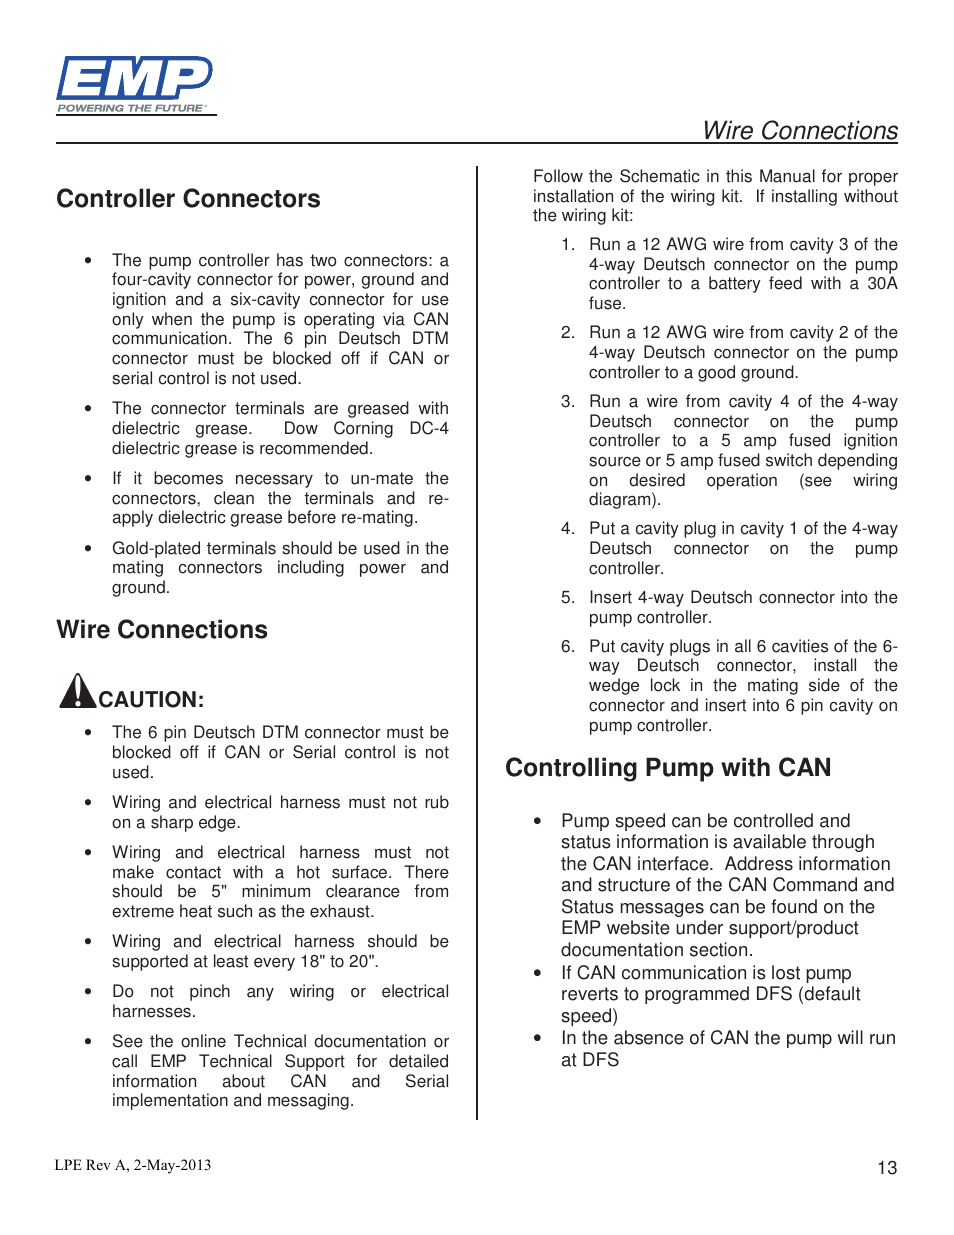 wire connections controller connectors controlling pump can wire connections controller connectors controlling pump can lingenfelter stewart emp high volume intercooler pump e2512a wp29 user manual page